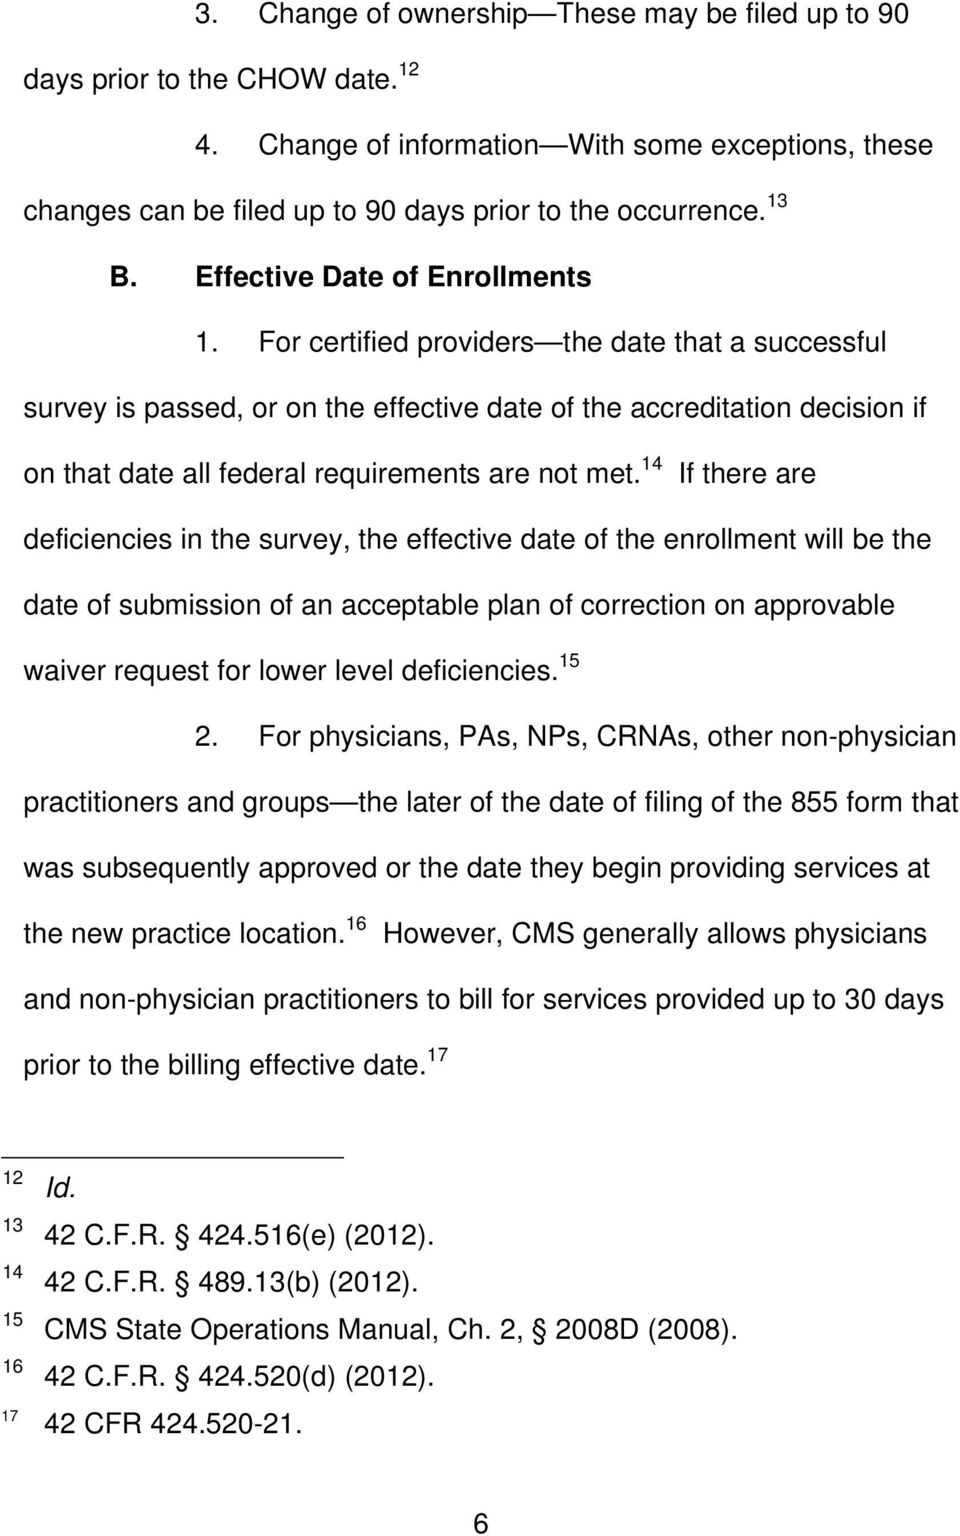 For certified providers the date that a successful survey is passed, or on the effective date of the accreditation decision if on that date all federal requirements are not met.